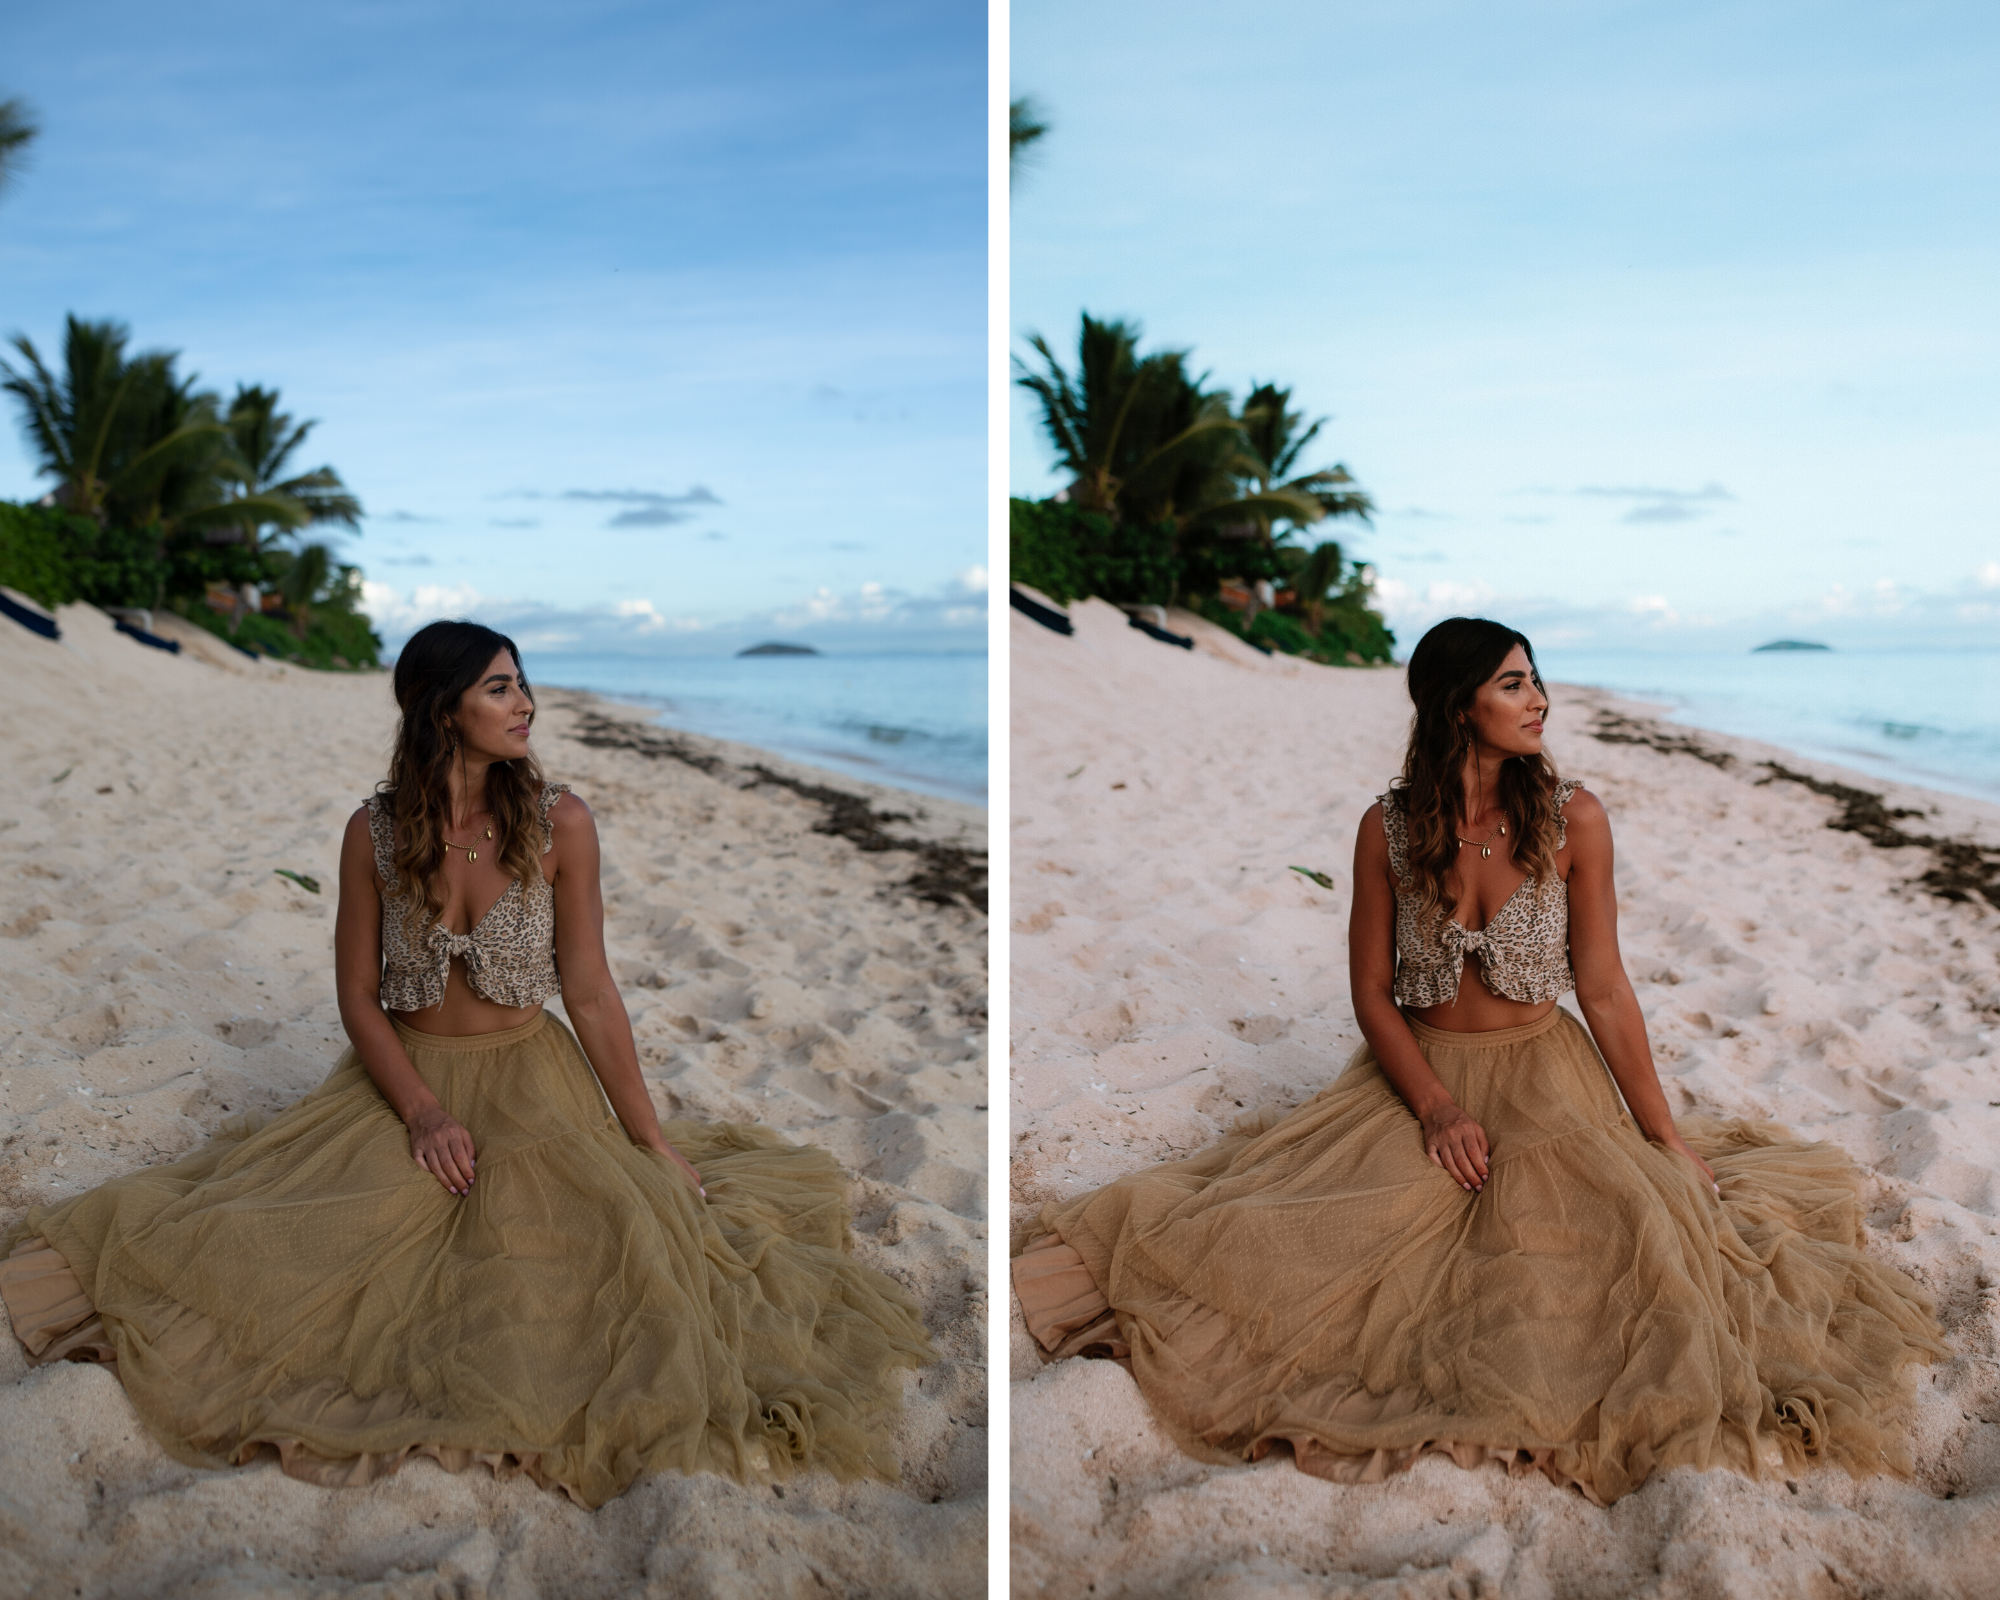 Lightroom preset before and after